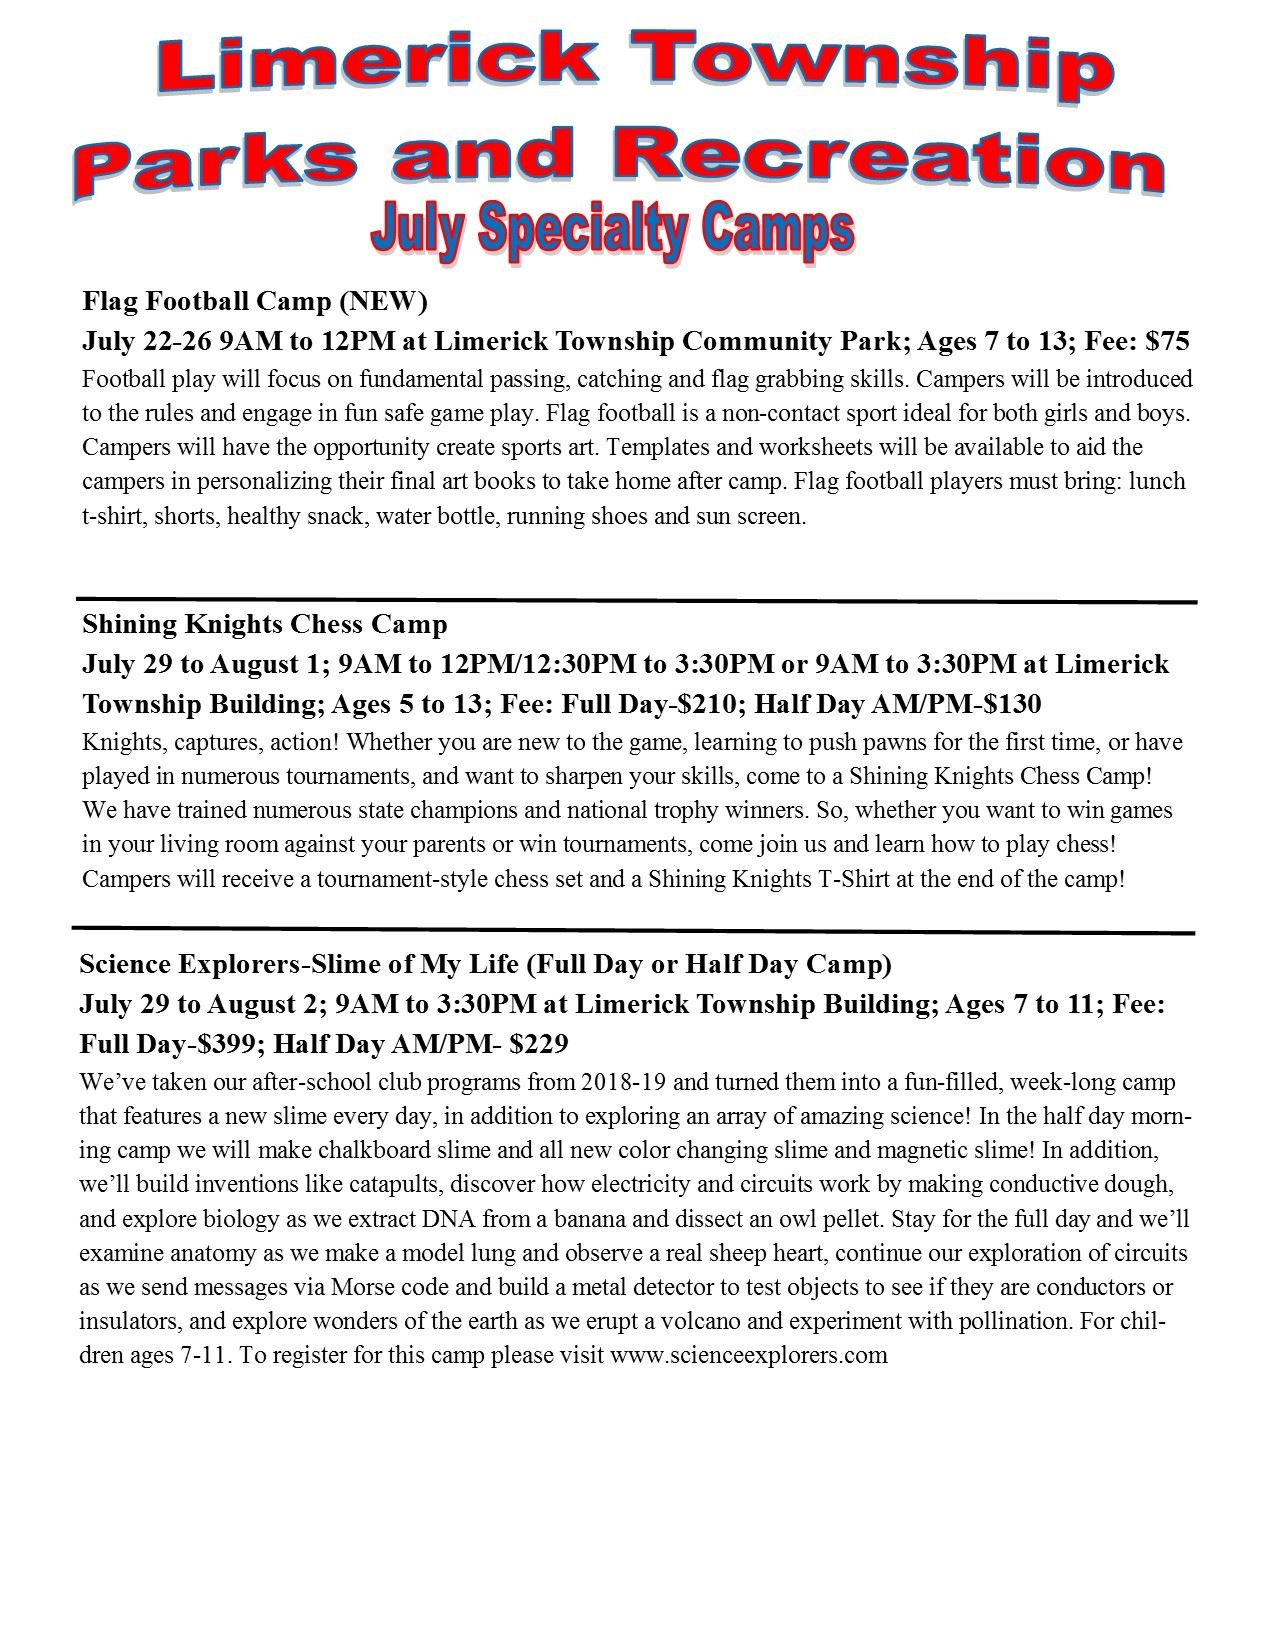 2019 July Specialty Camps pg 2